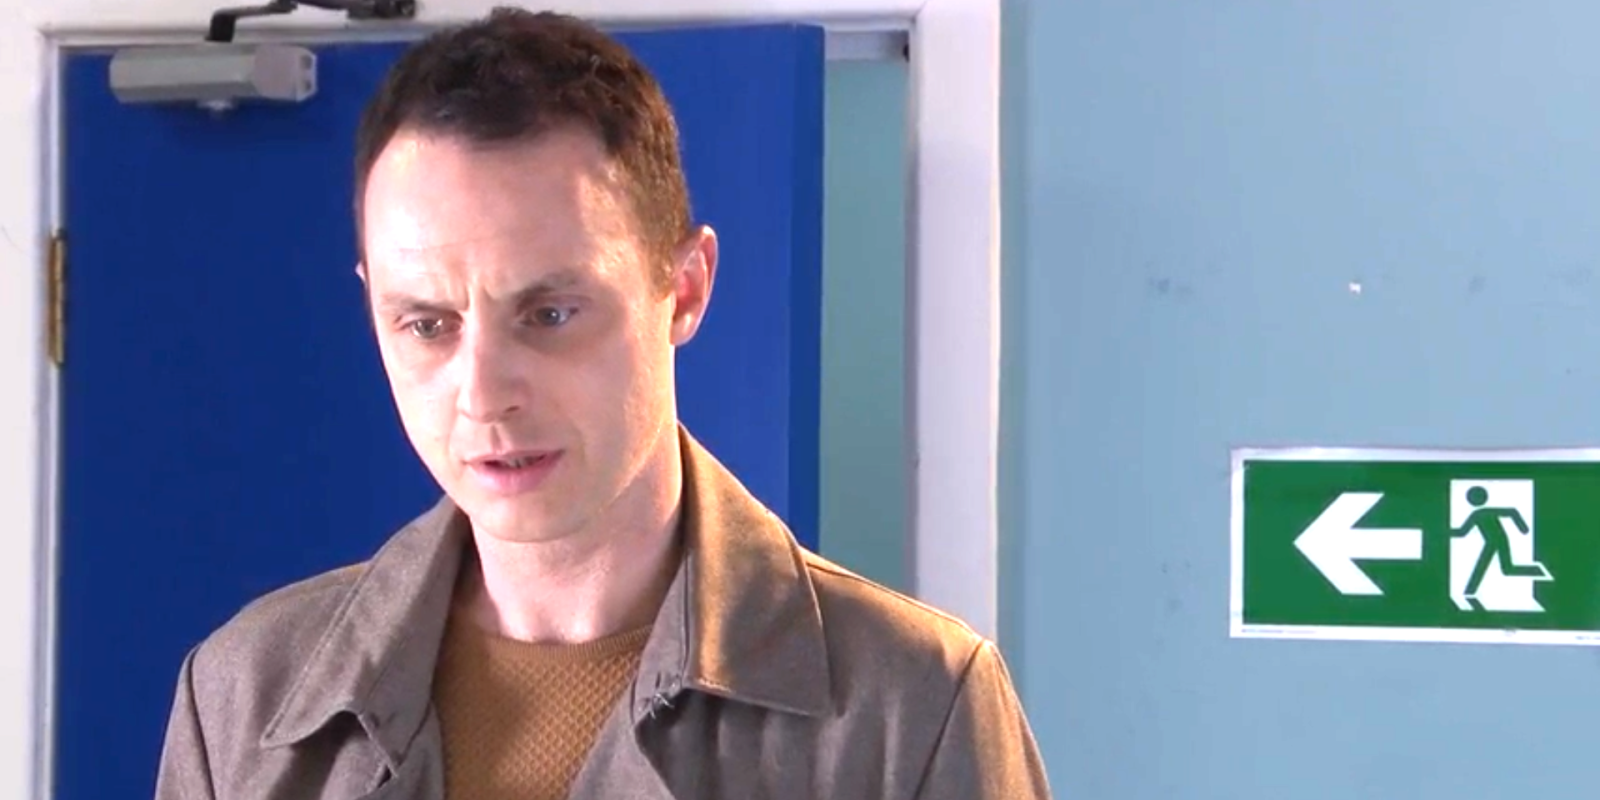 Hollyoaks fans are not happy with Harry for abandoning James